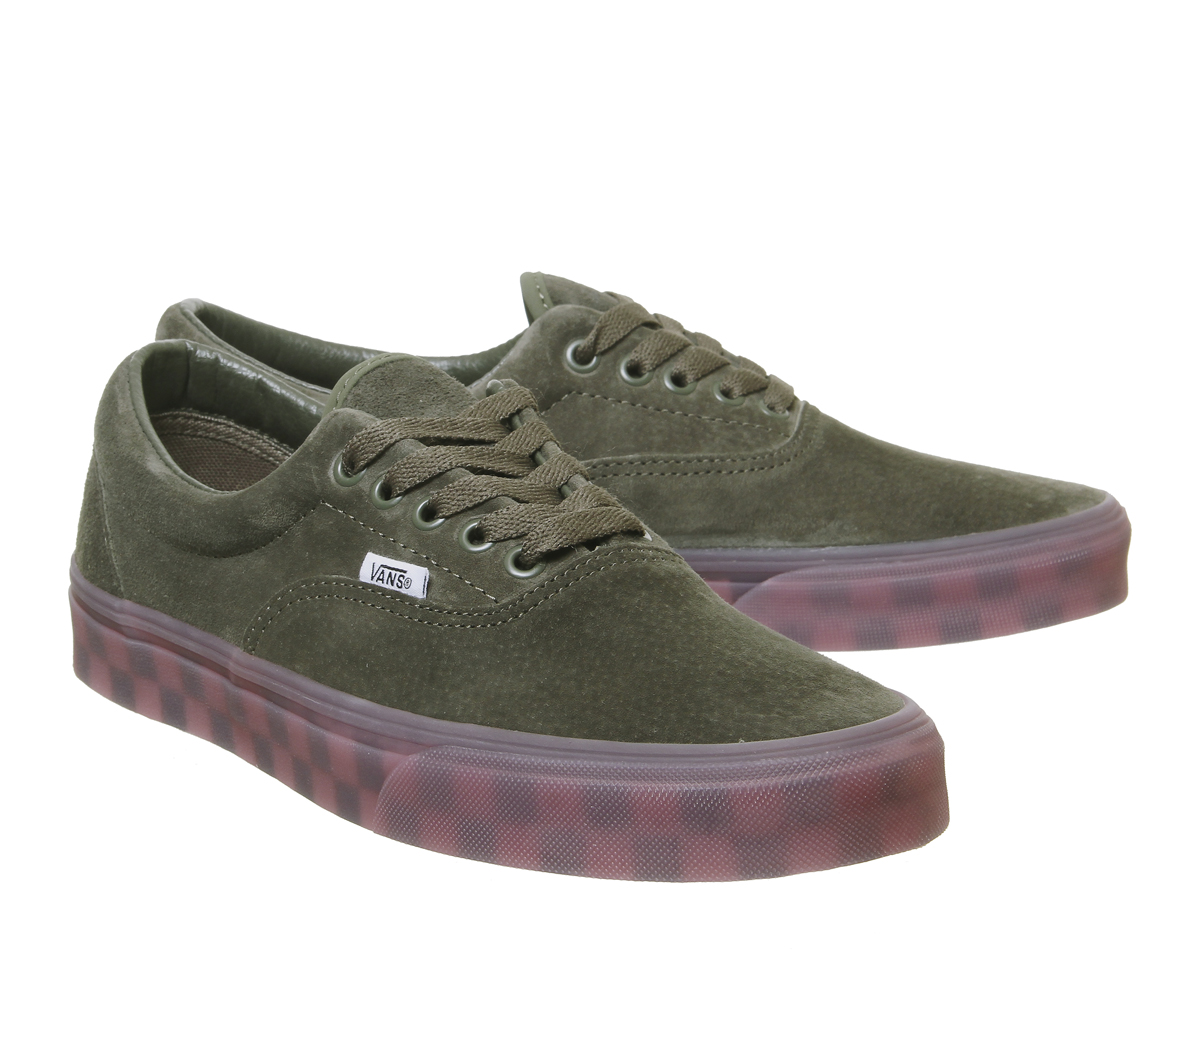 568c406793 Sentinel Mens Vans Era Trainers Grape Leaf Checker Ice Sole Exclusive Trainers  Shoes